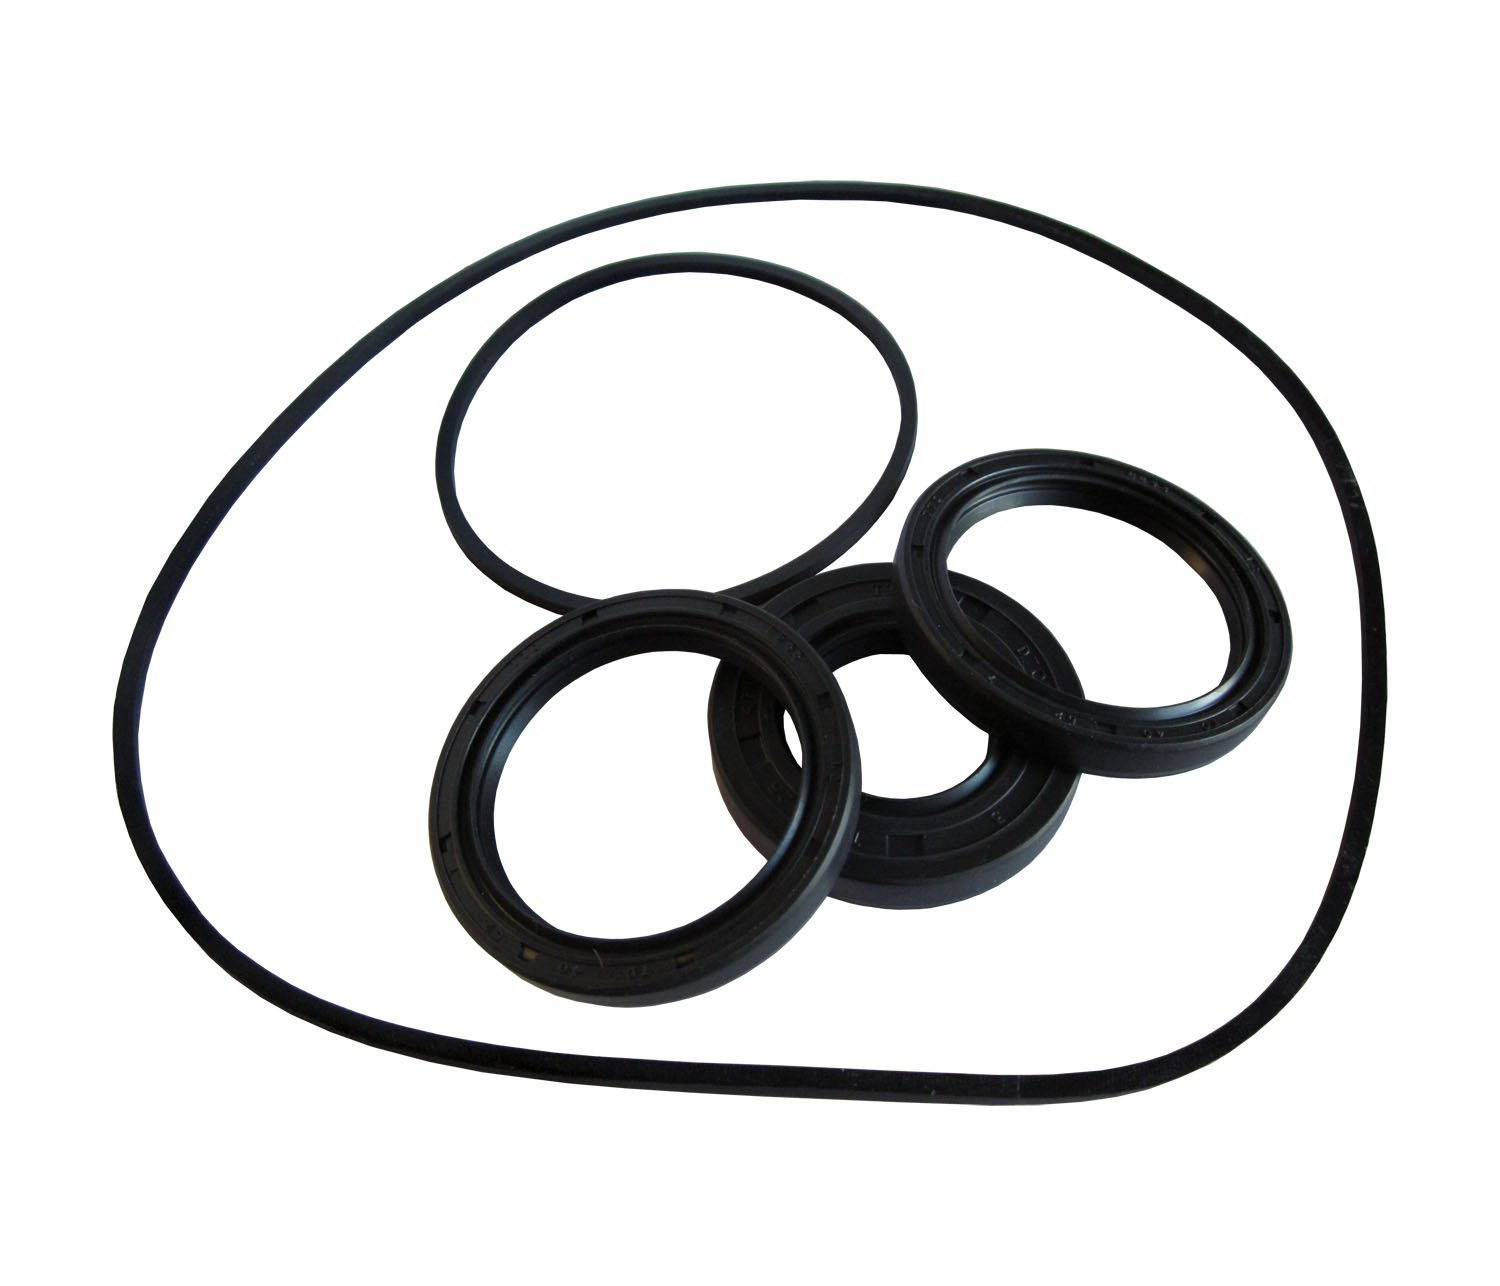 Polaris Sportsman 400 450 500 600 700 800 Front Differential Cover O-Rings Seals 3233956 Quad Logic